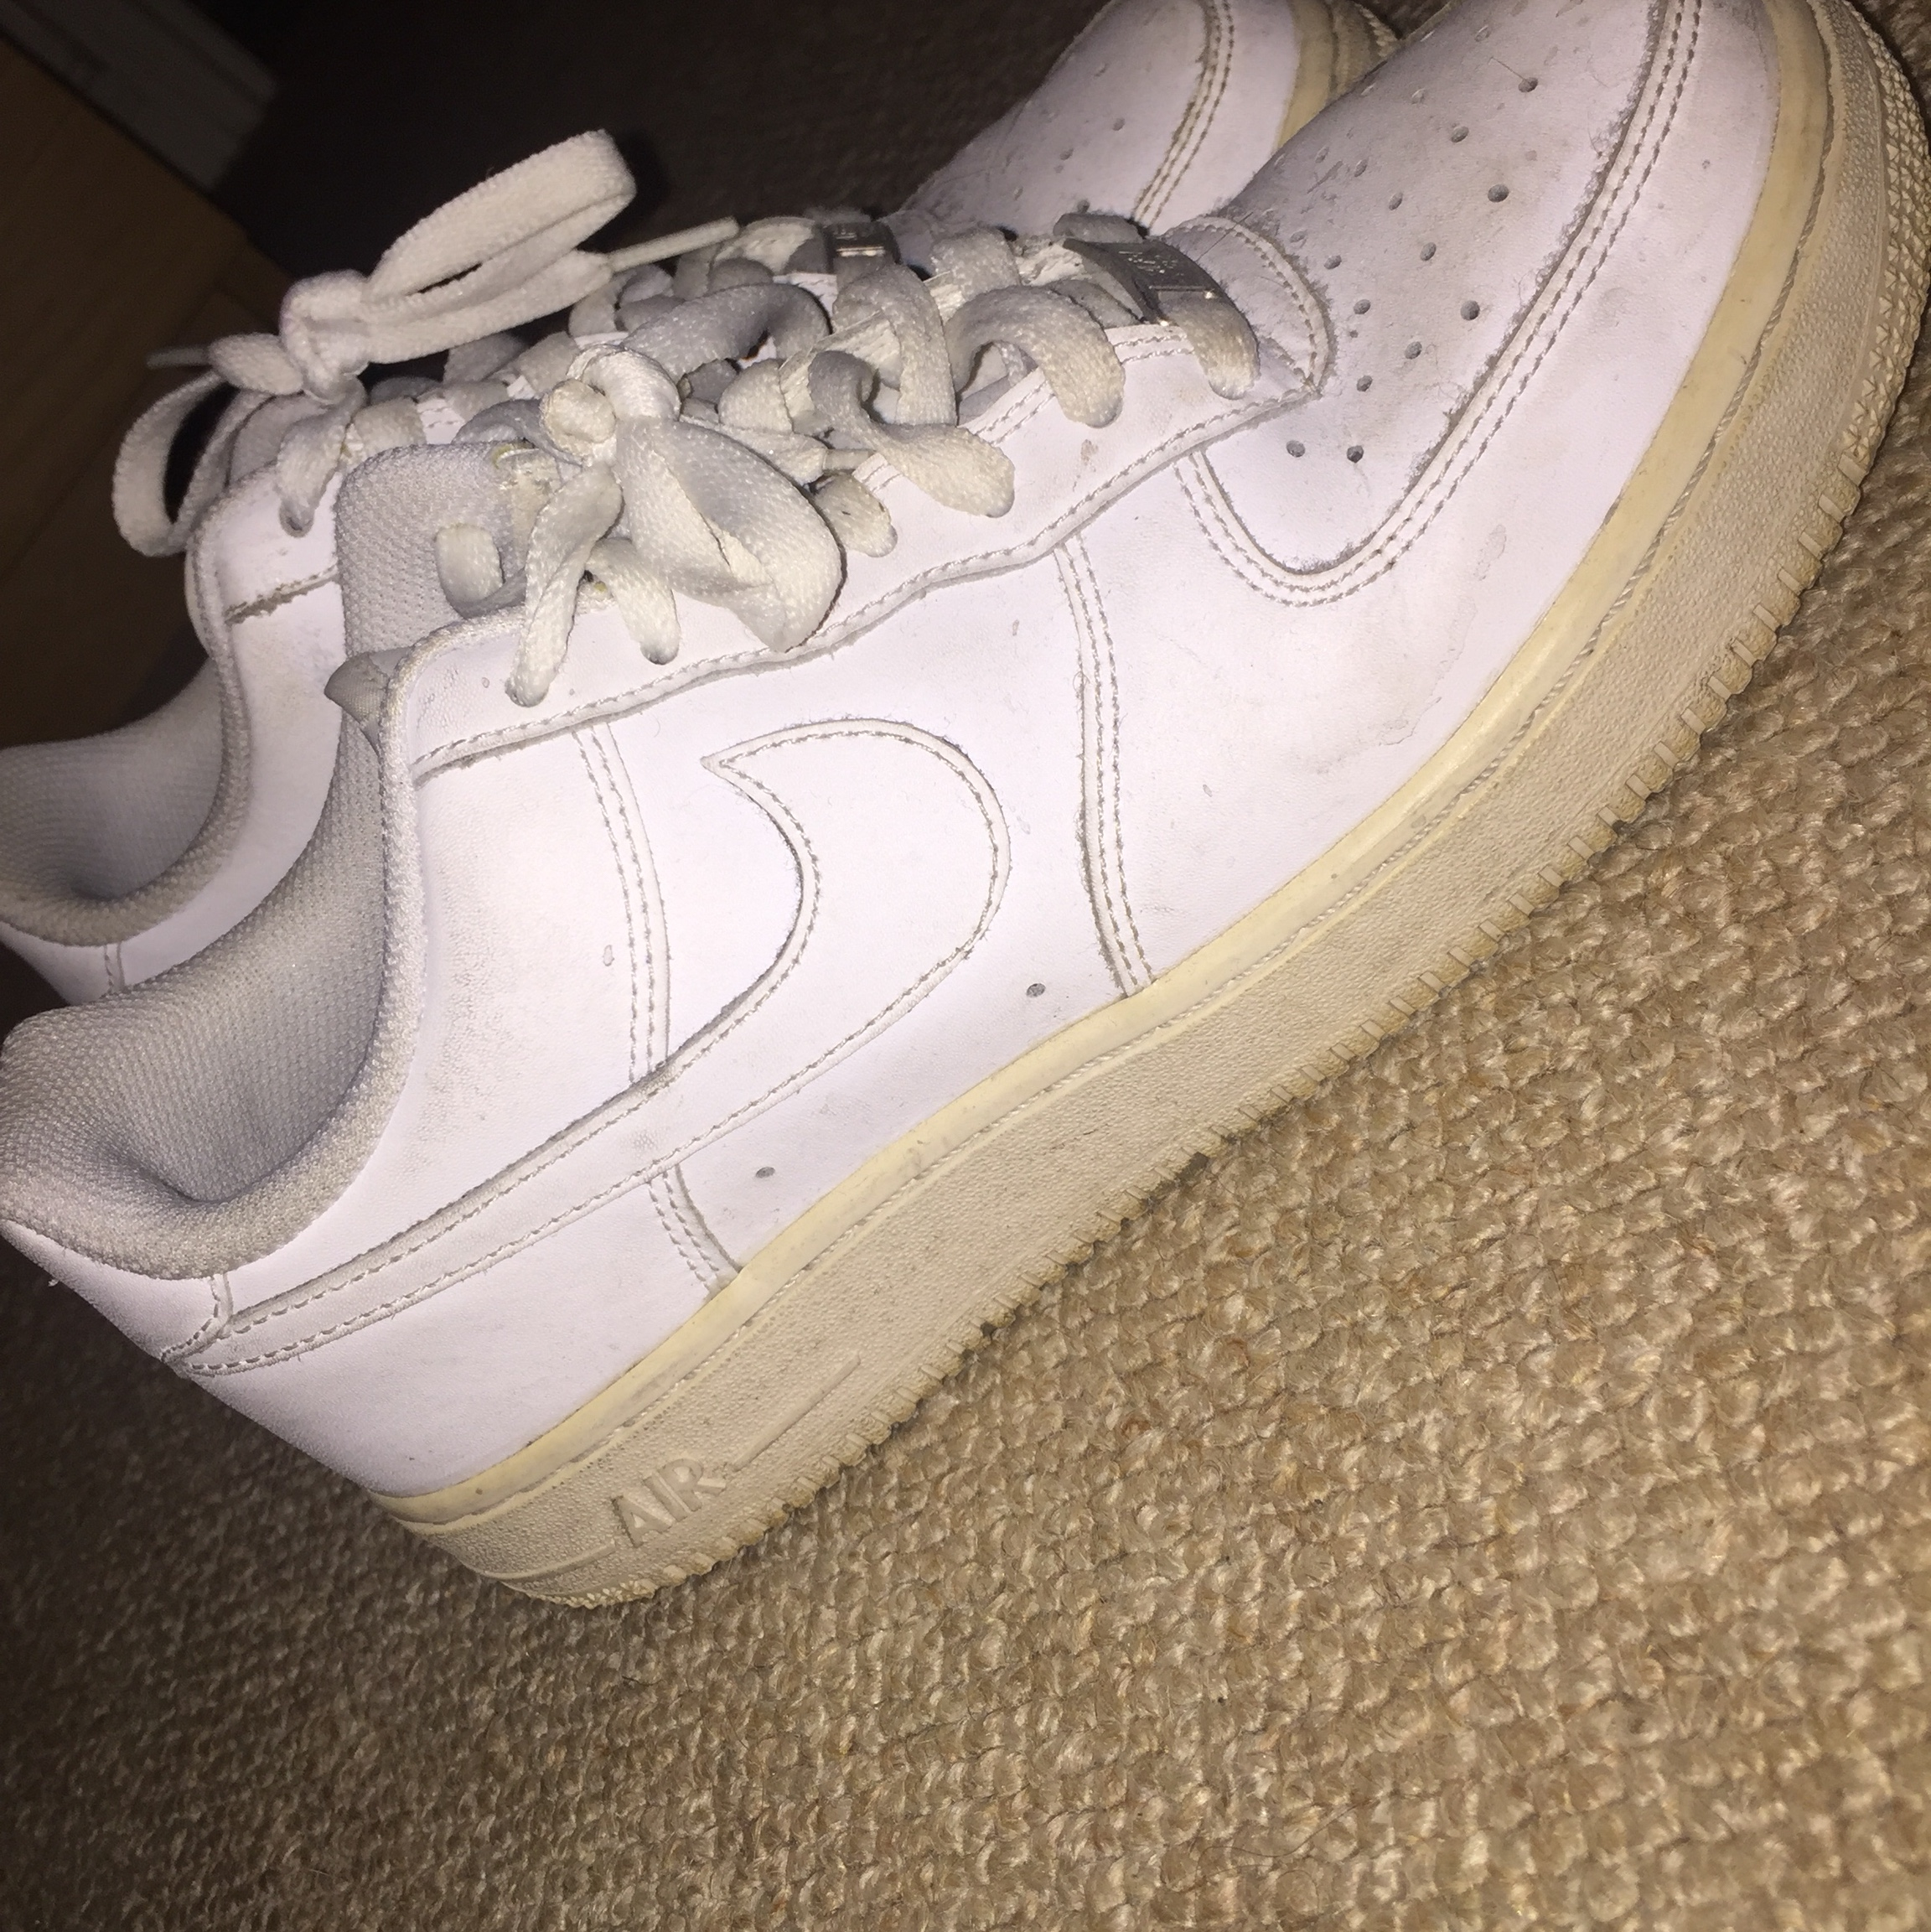 White nike Air Force 1. Picture is